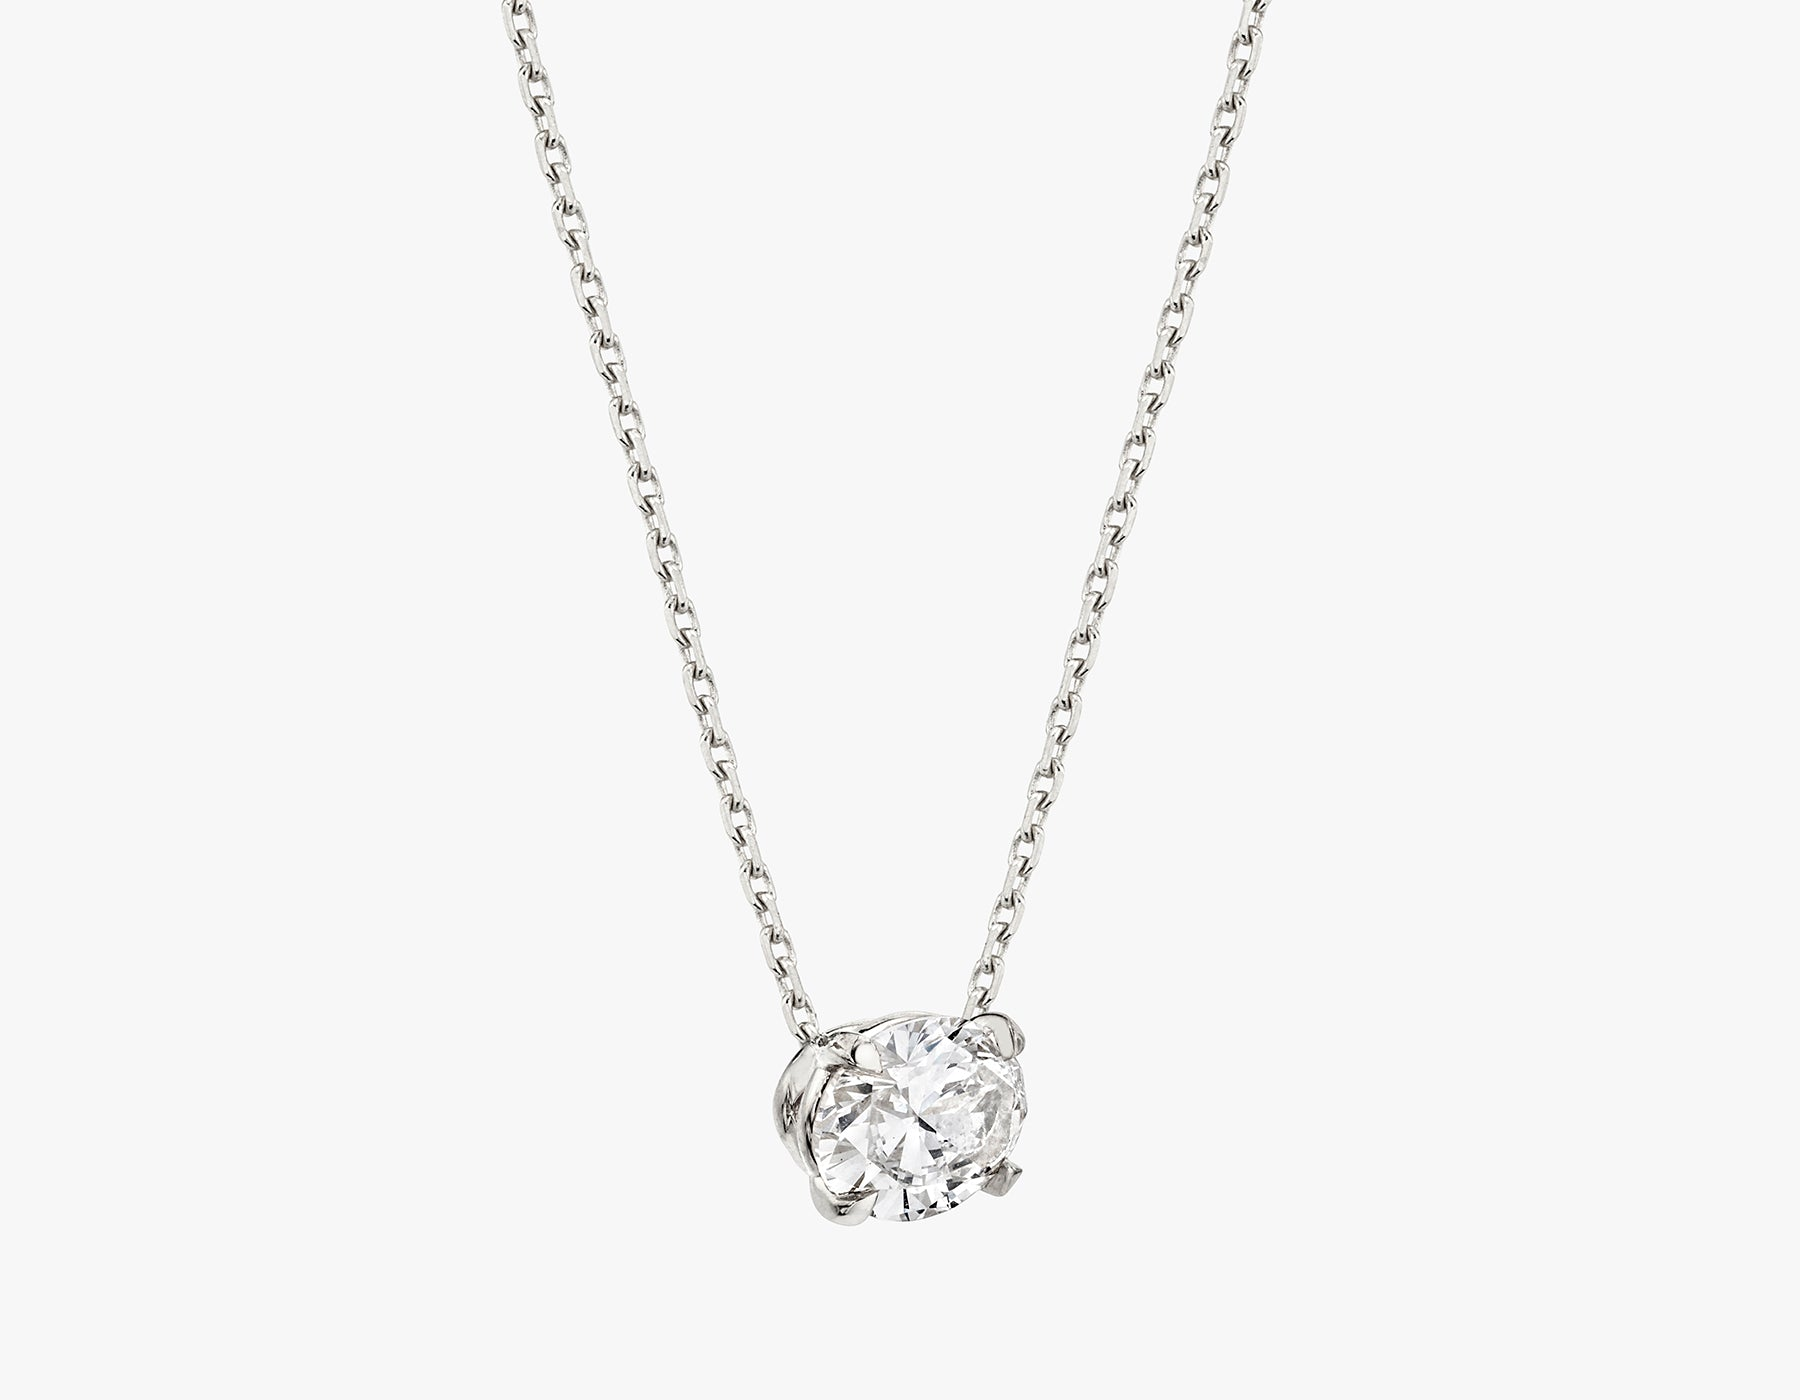 Vrai 1ct Solitaire Oval Created Diamond Necklace side view, 14K White Gold